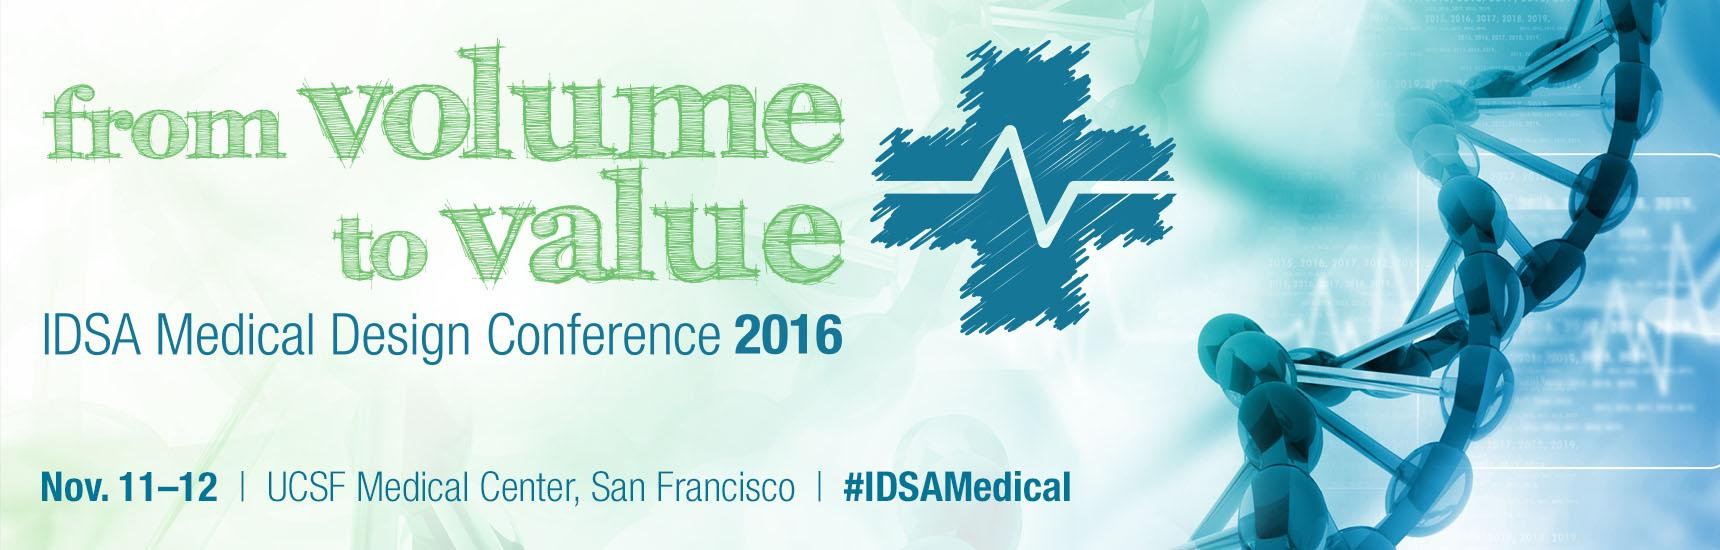 ucsf powerpoint template - idsa medical design conference 2016 from volume to value